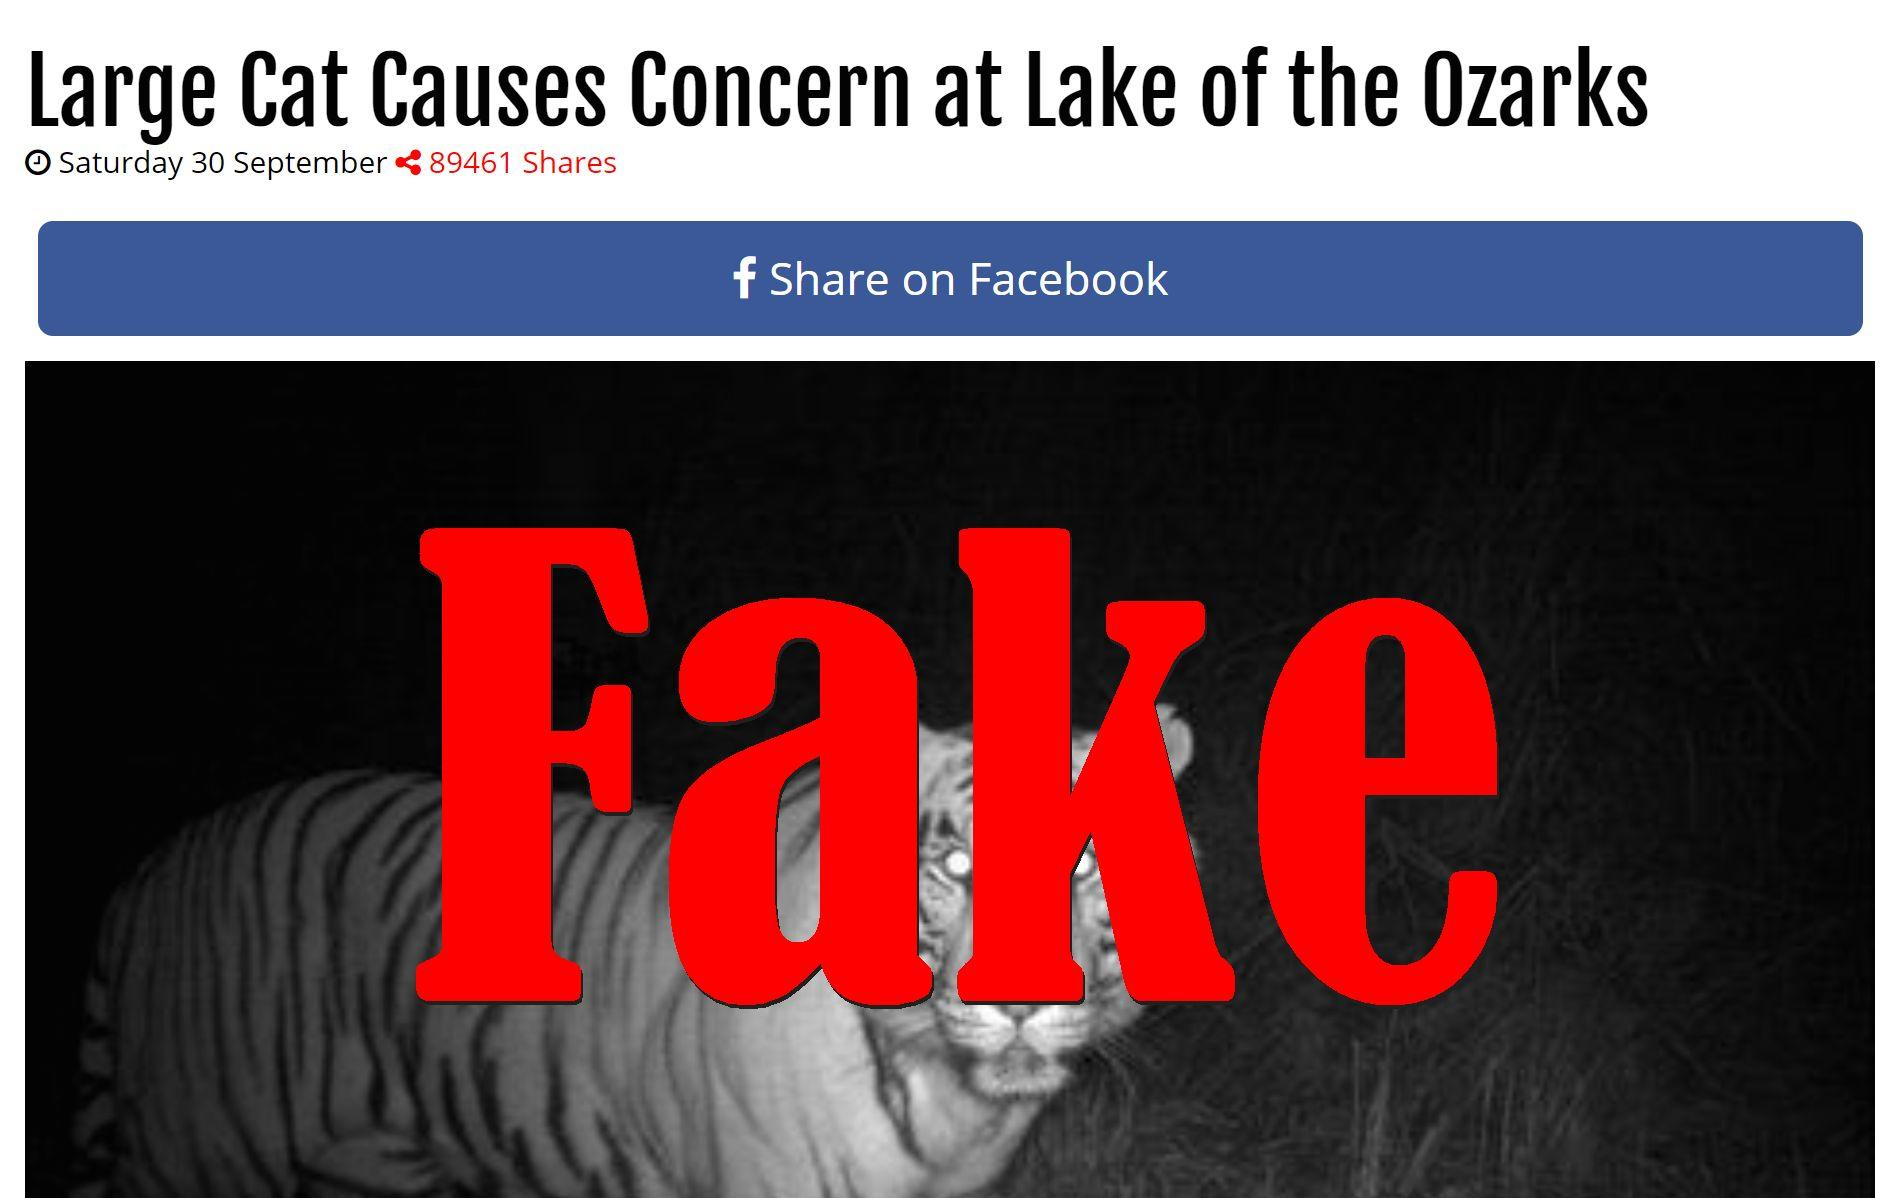 Fake News: Large Cat Did NOT Cause Concern At Lake Of The Ozarks